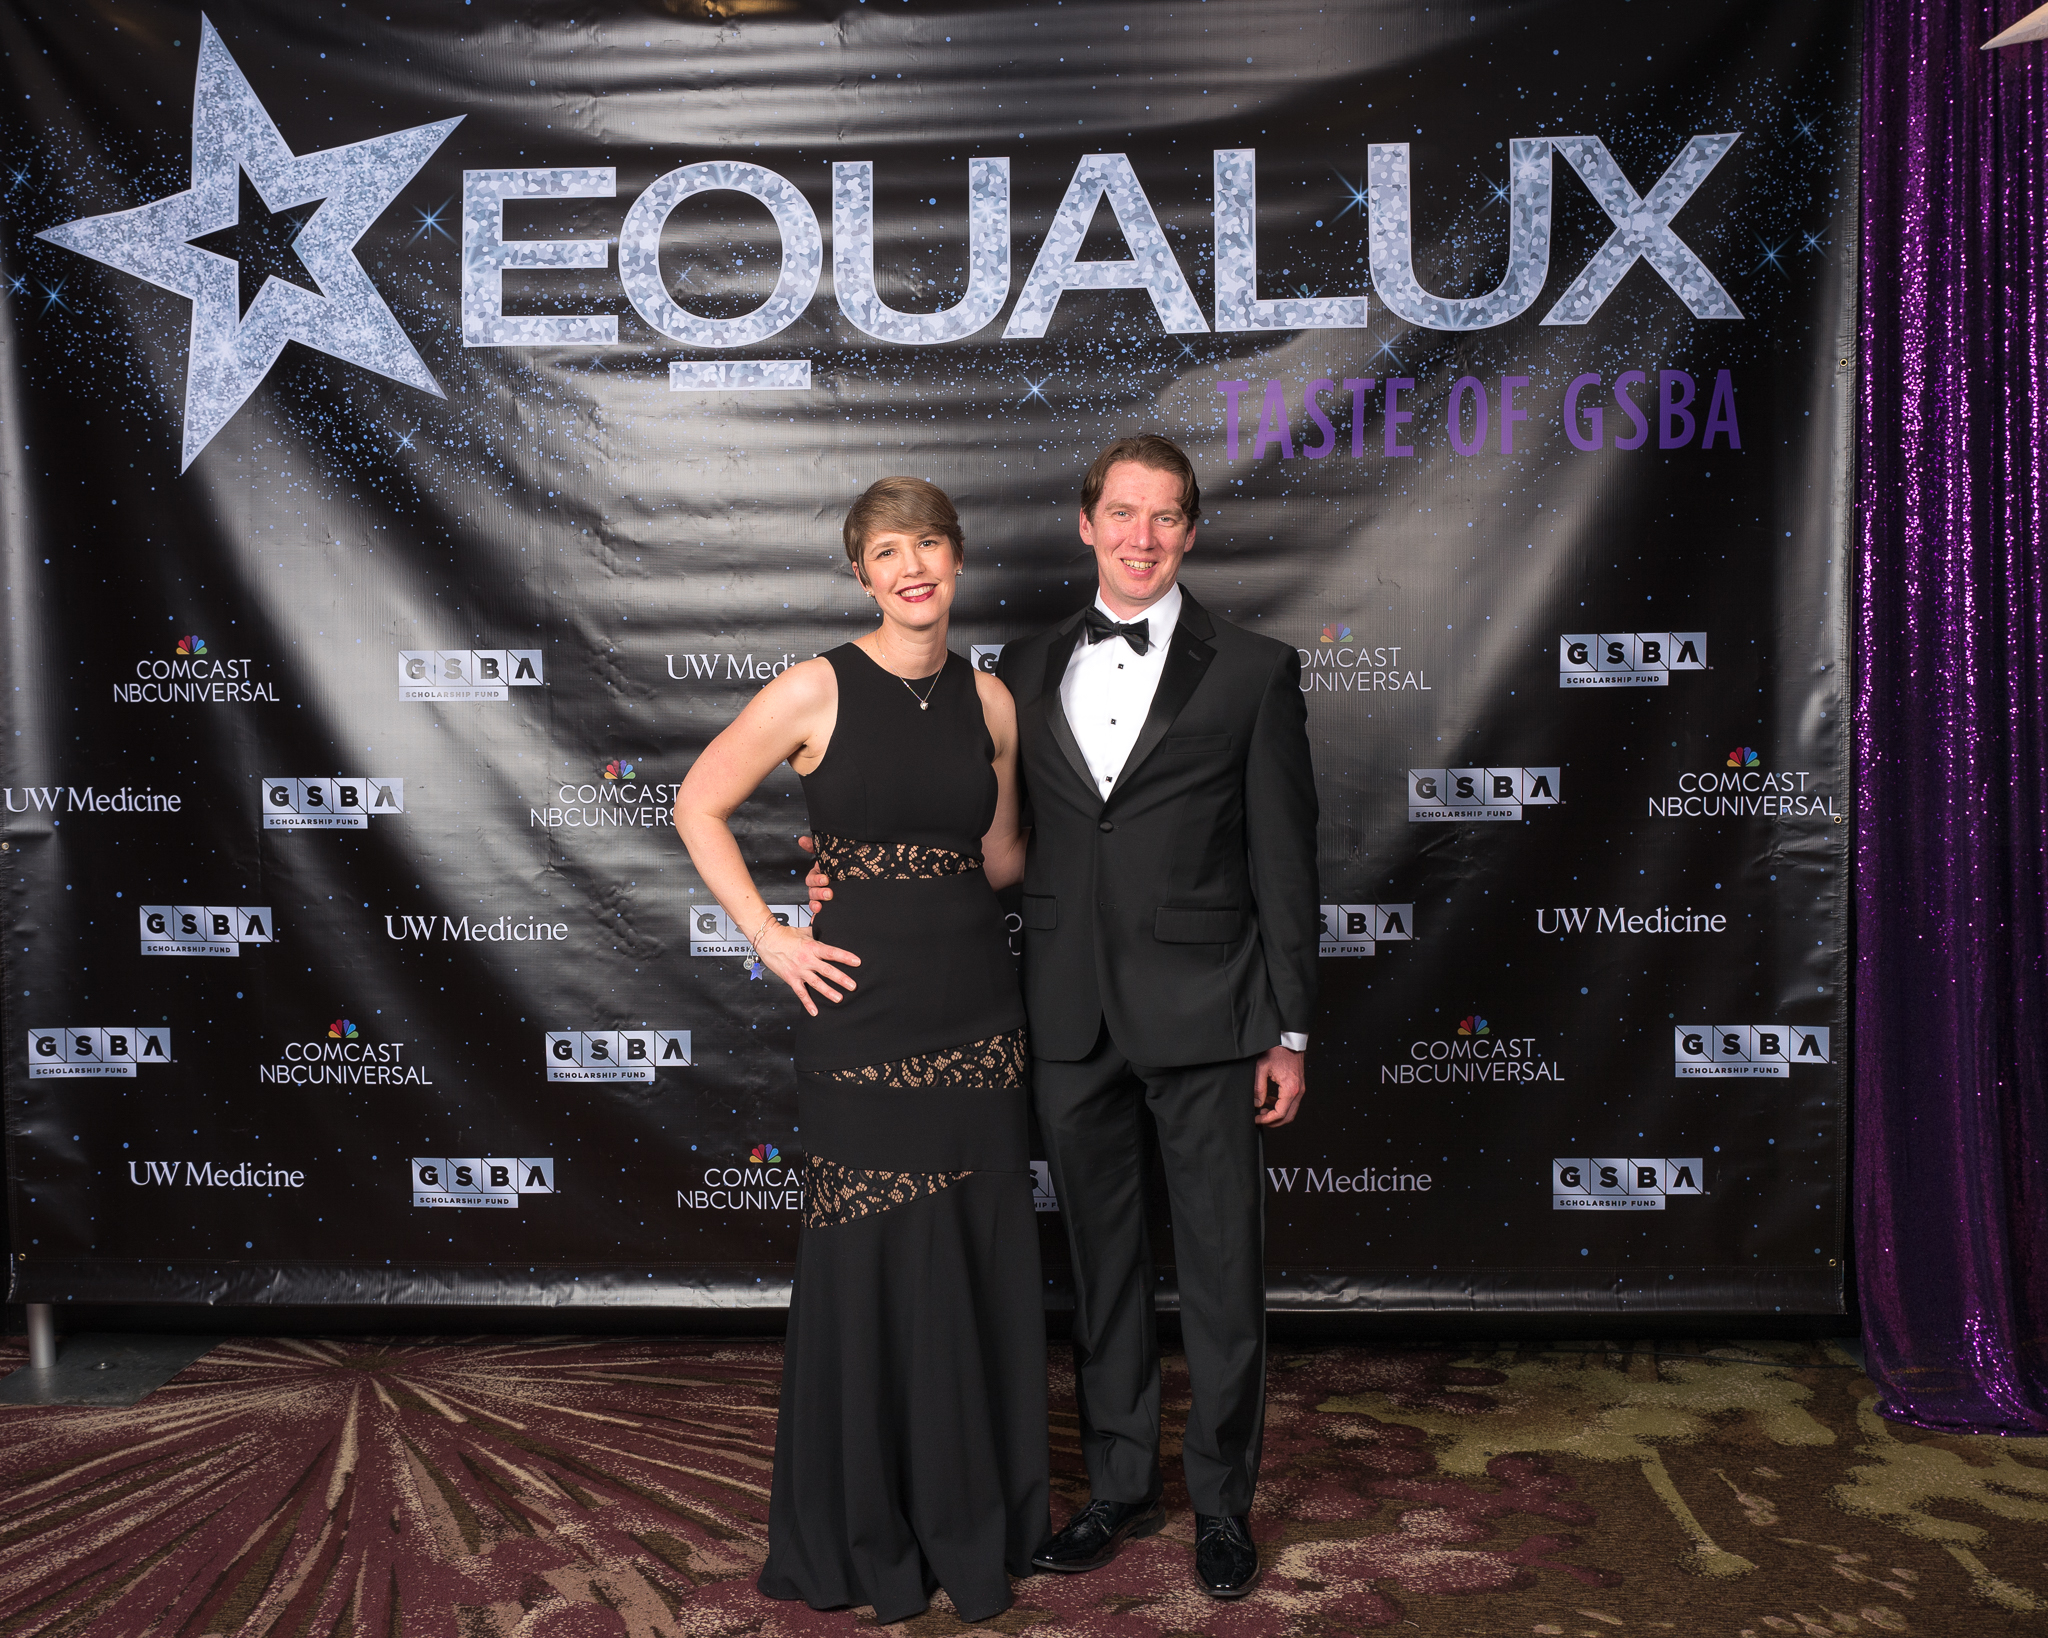 111718_GSBA EQUALUX at The Westin Seattle (Credit- Nate Gowdy)-88.jpg